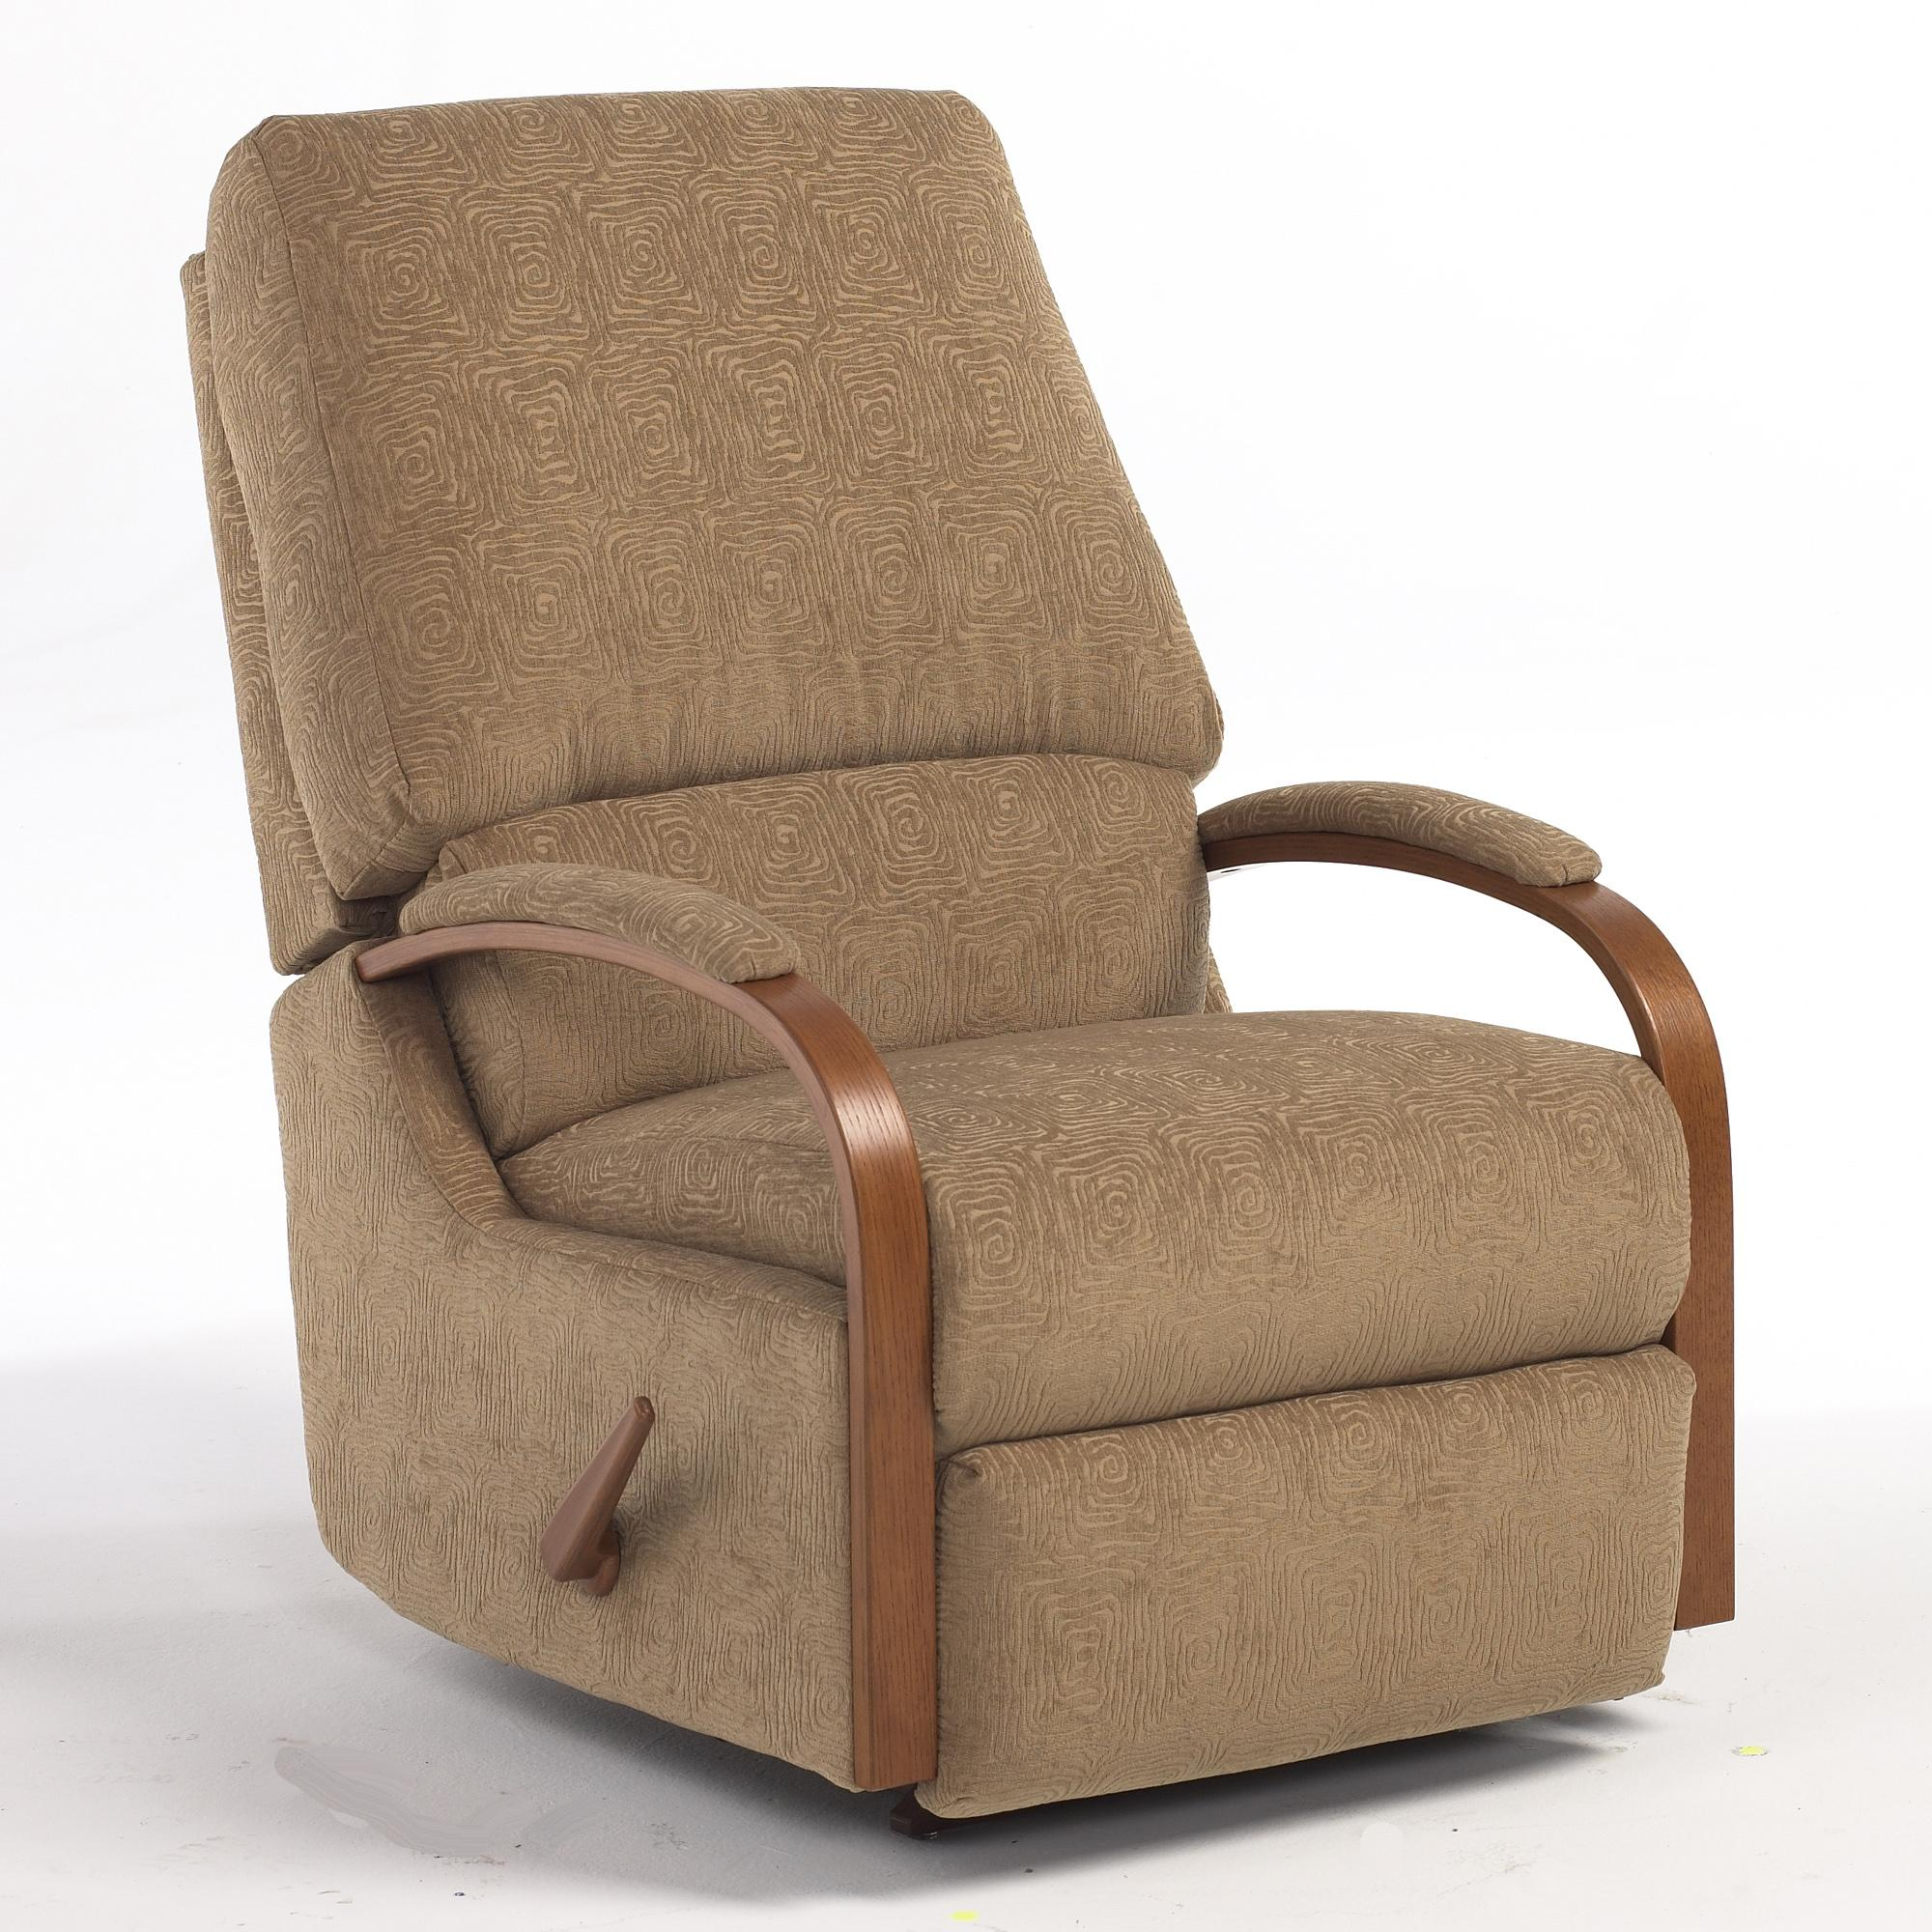 Best Home Furnishings Chairs